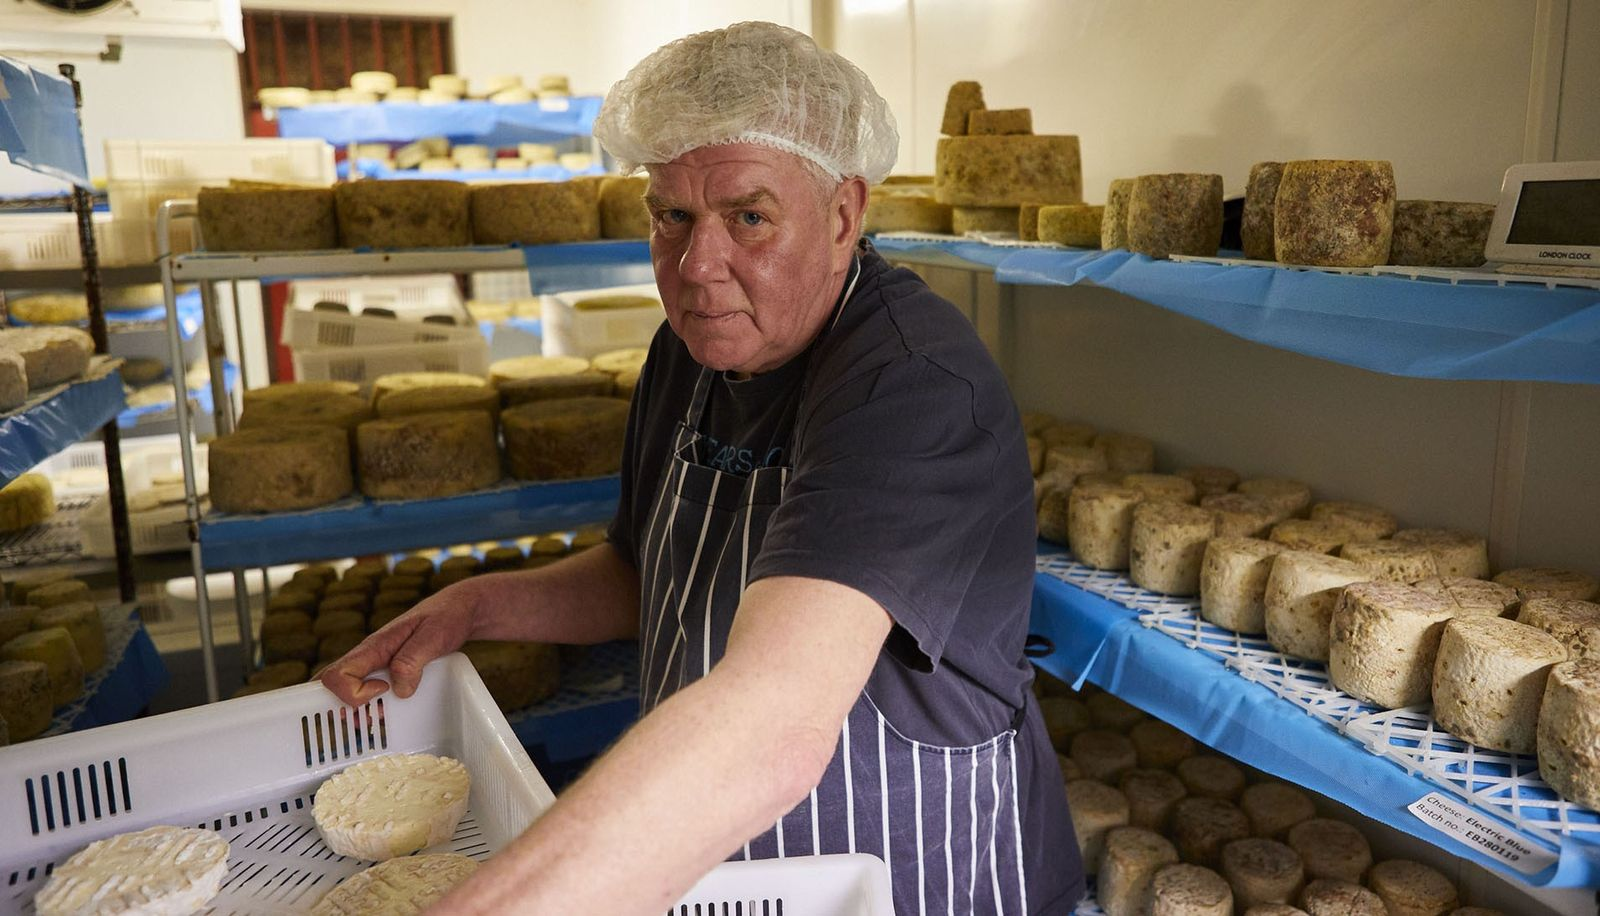 Meet the urban cheesemakers: what I learned making cheese in North London